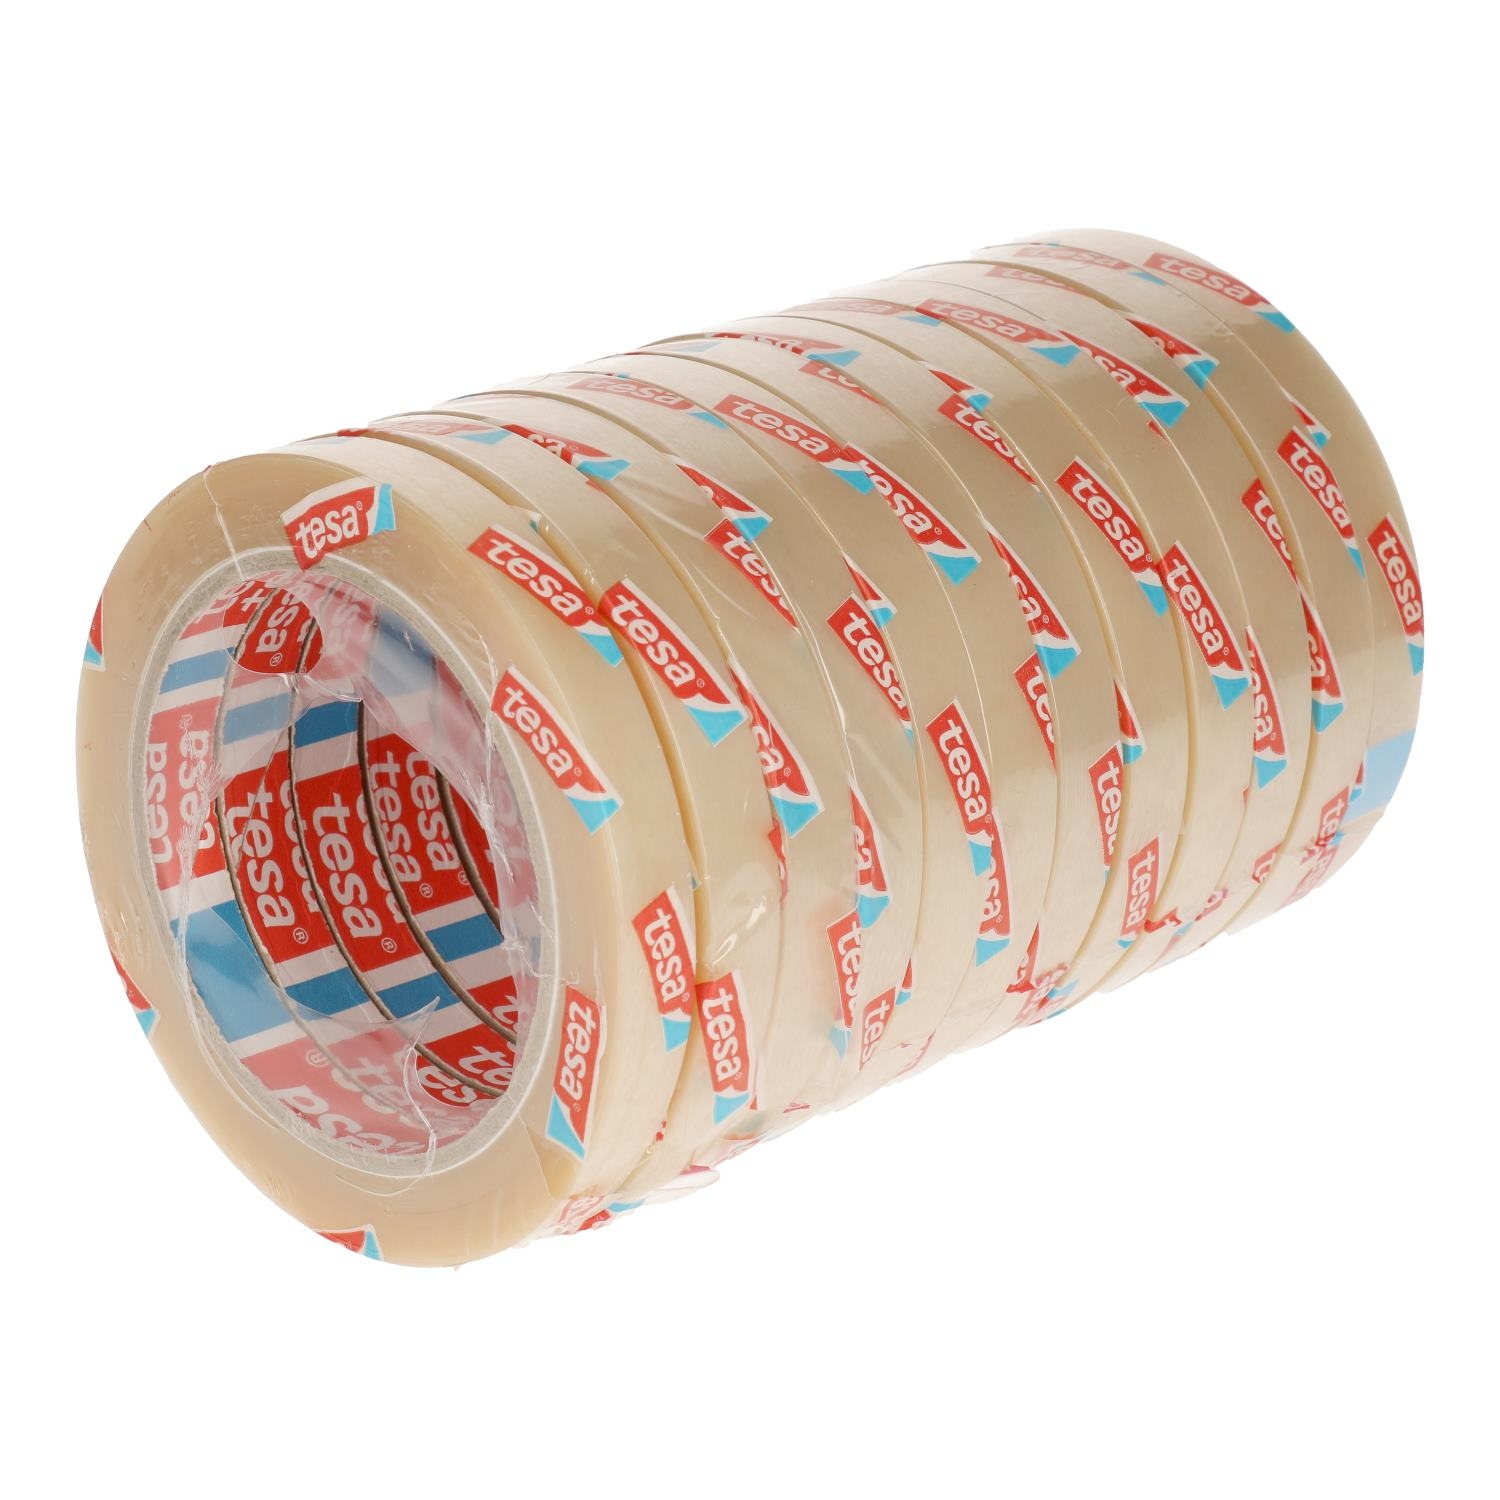 Tesa® tape PVC transparant 4204 12 mm x 66 mtr